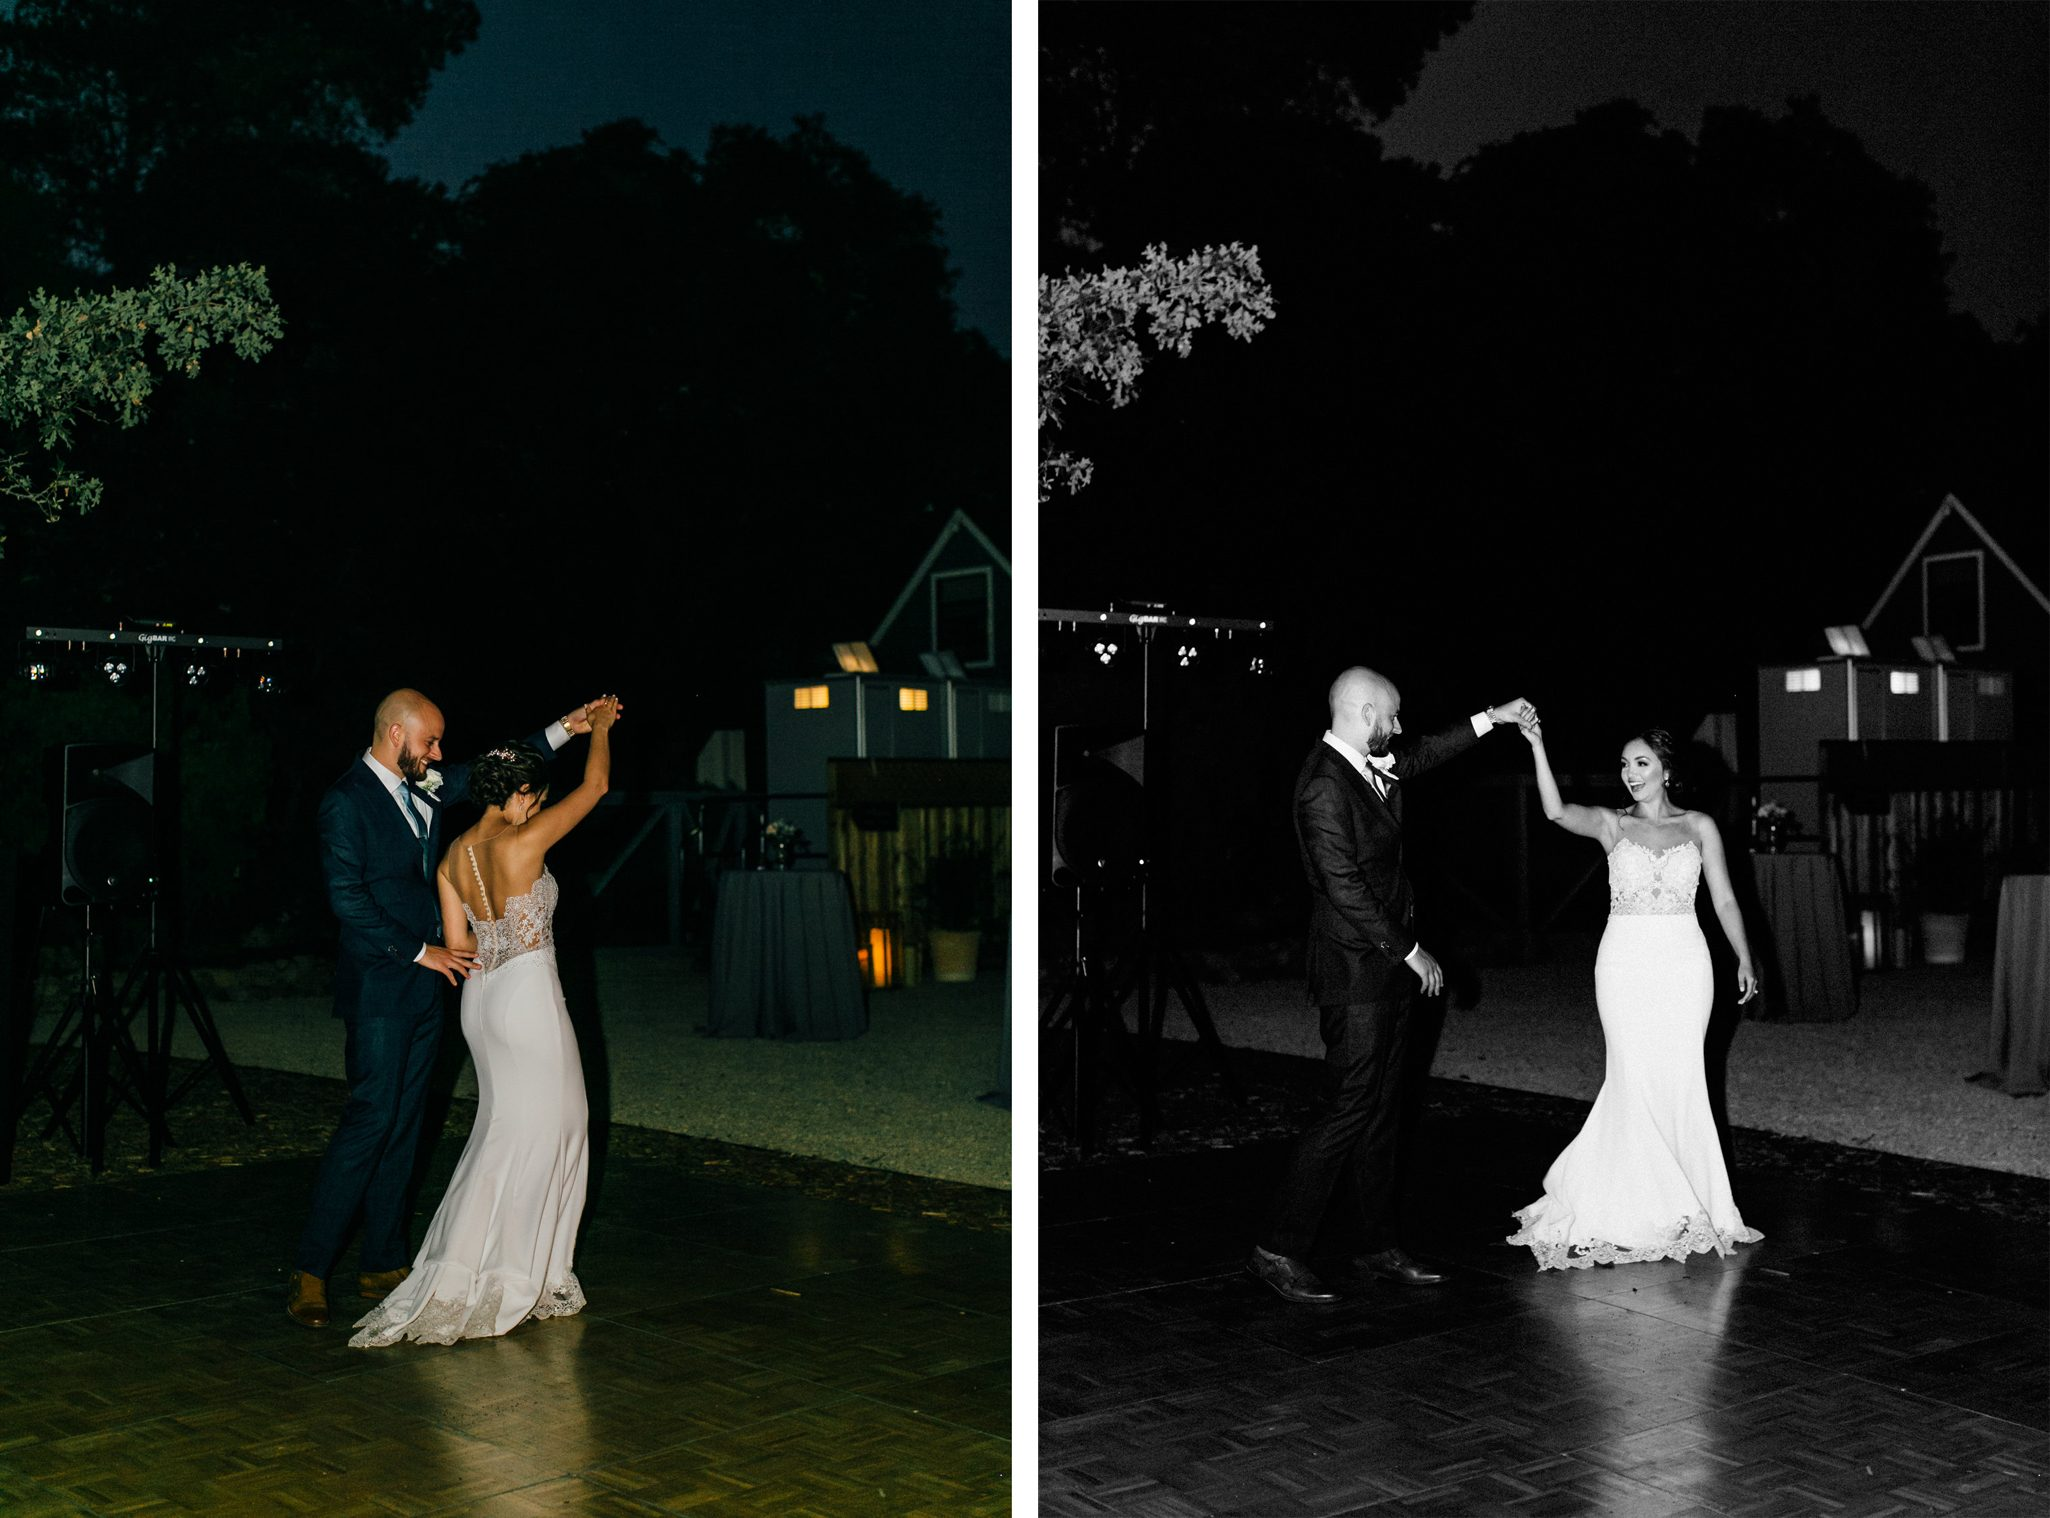 Bride & groom dancing in a Napa Valley wedding